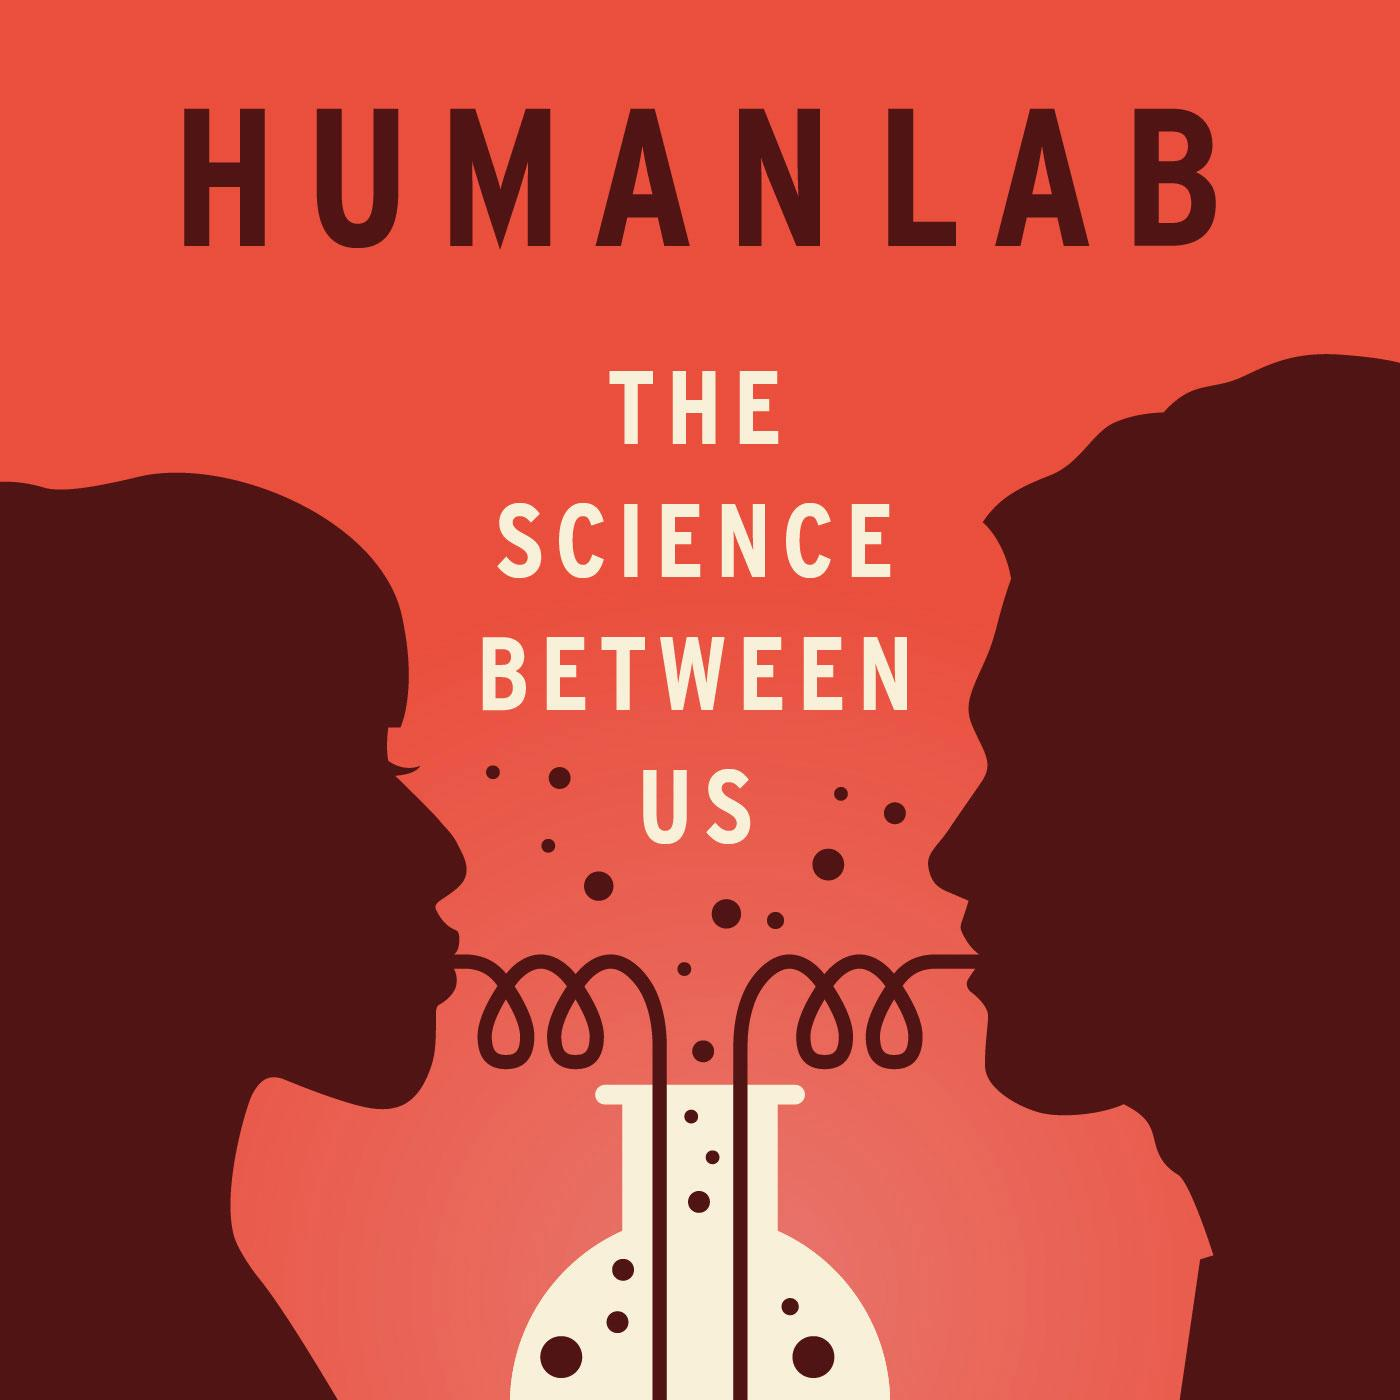 Amy Alkon's HumanLab: The Science Between Us